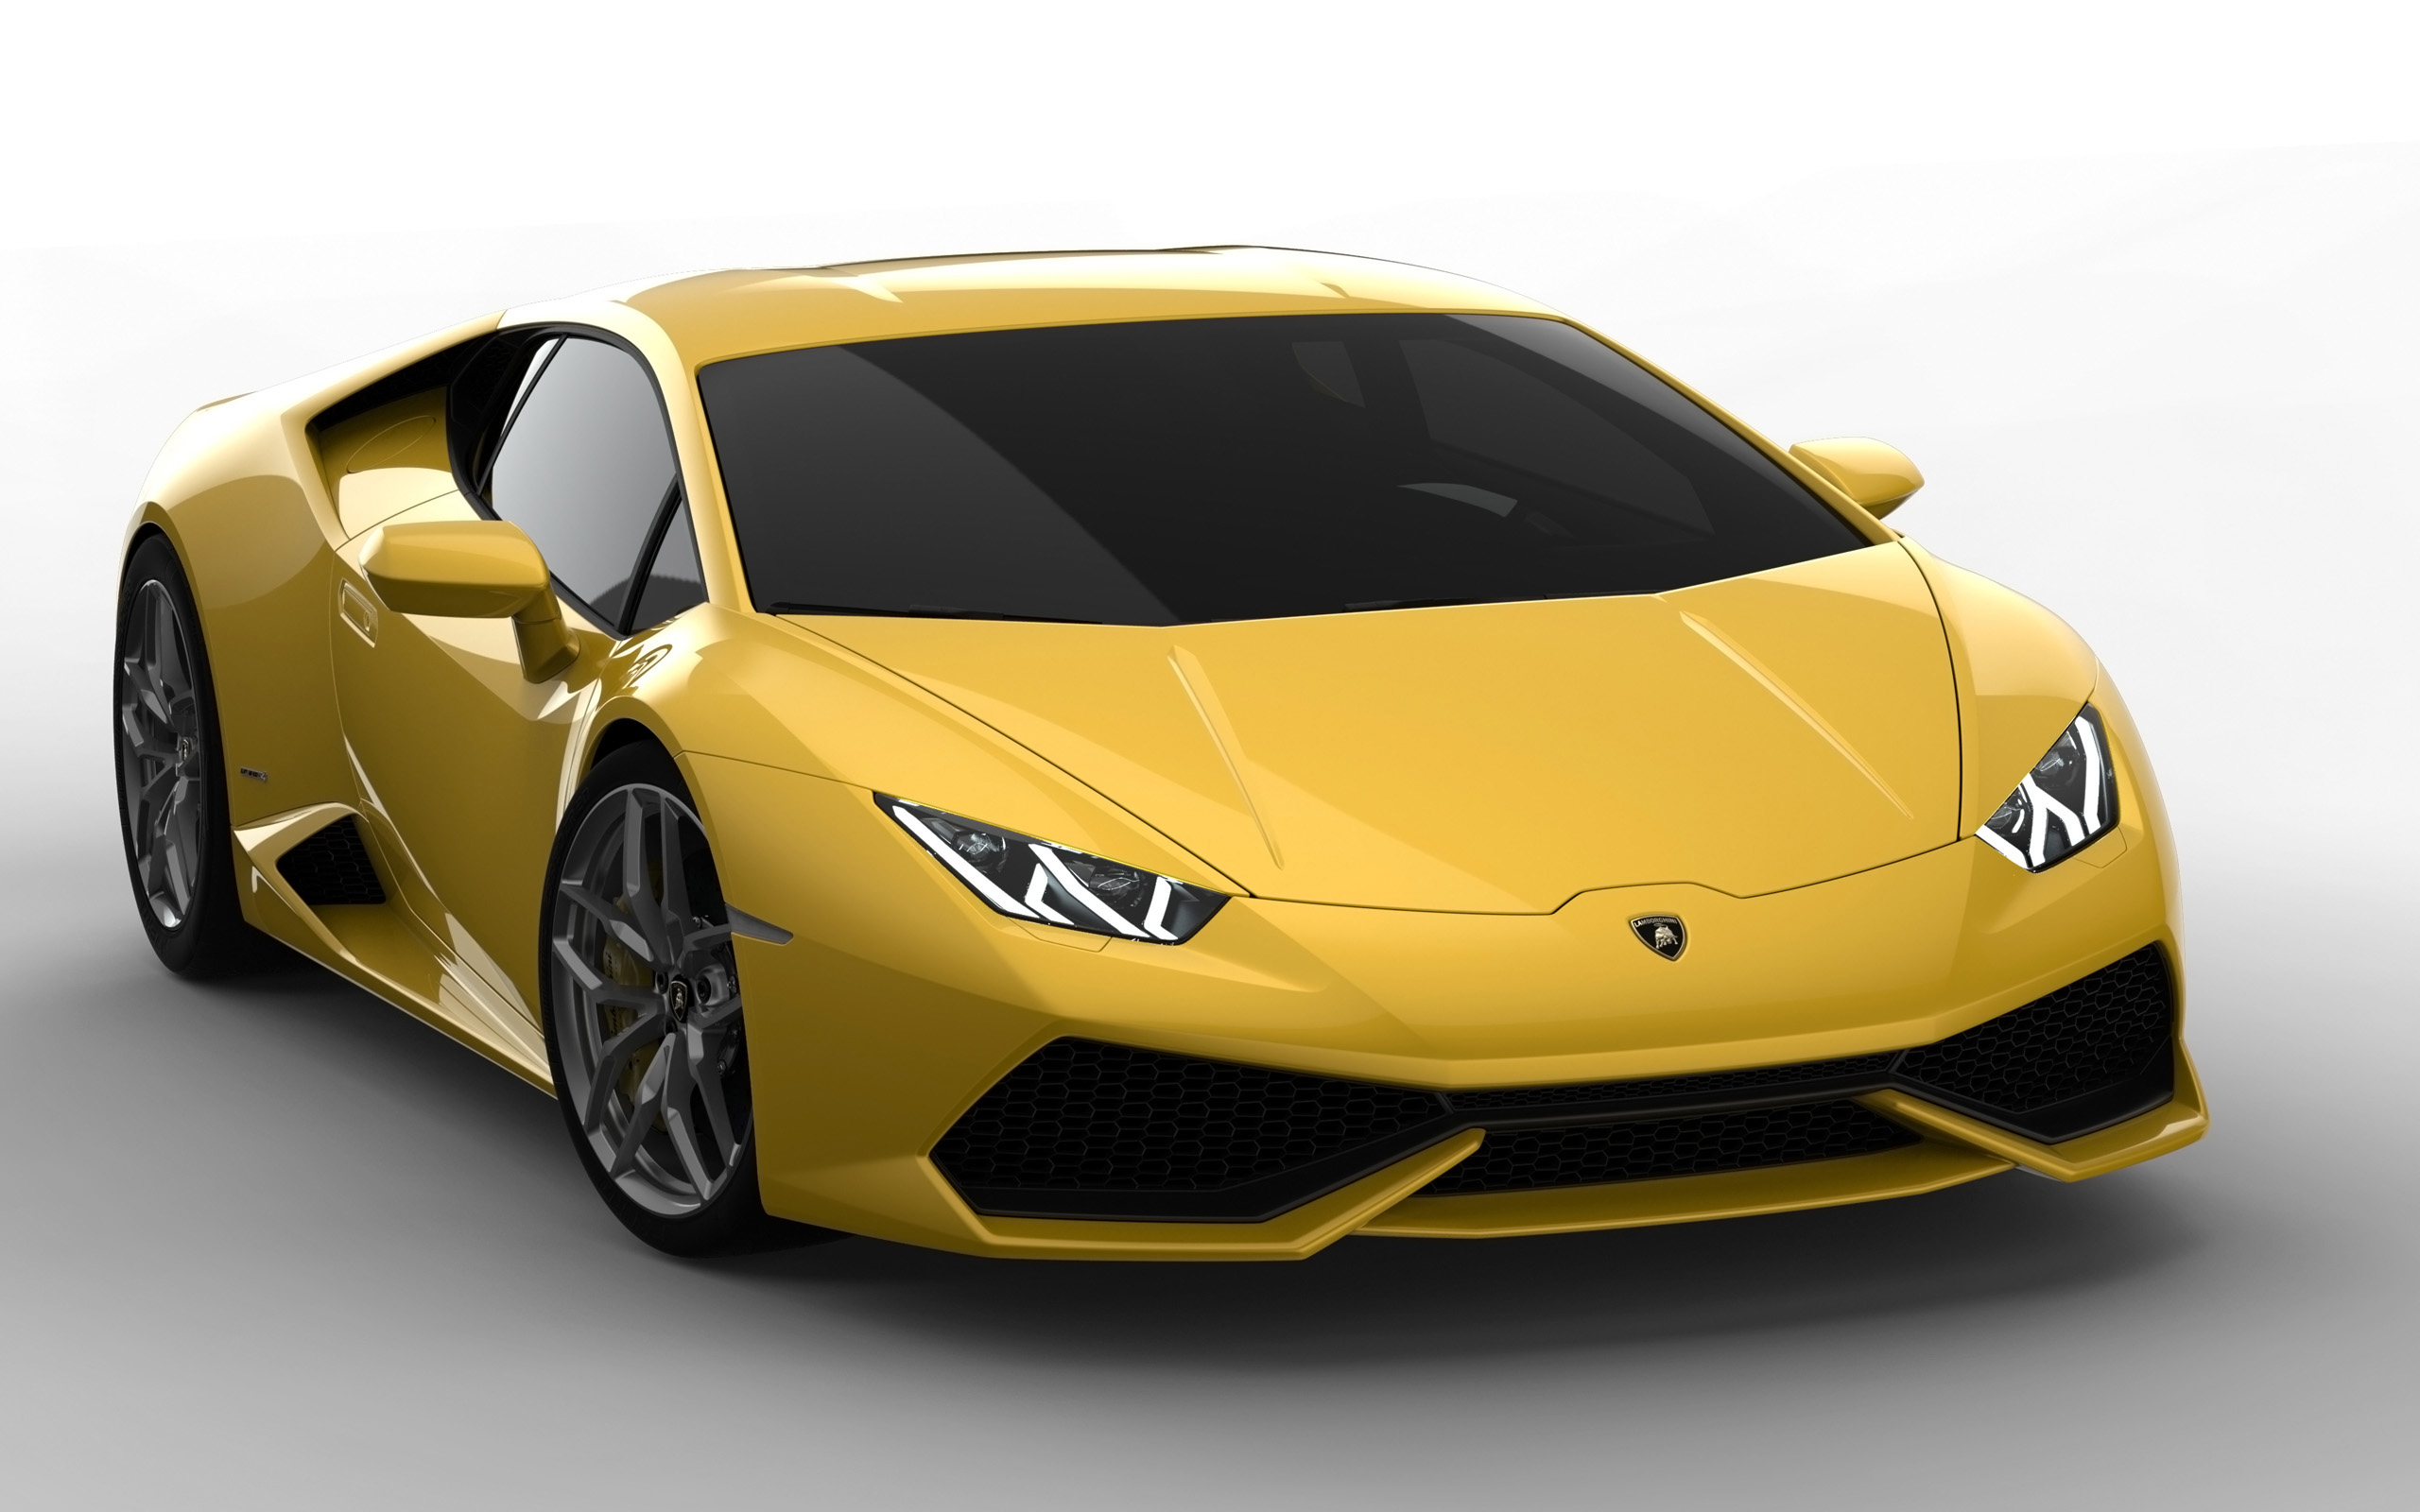 Buy Lamborghini Huracan Wallpapers 1383 Wallpaper Cool 2560x1600